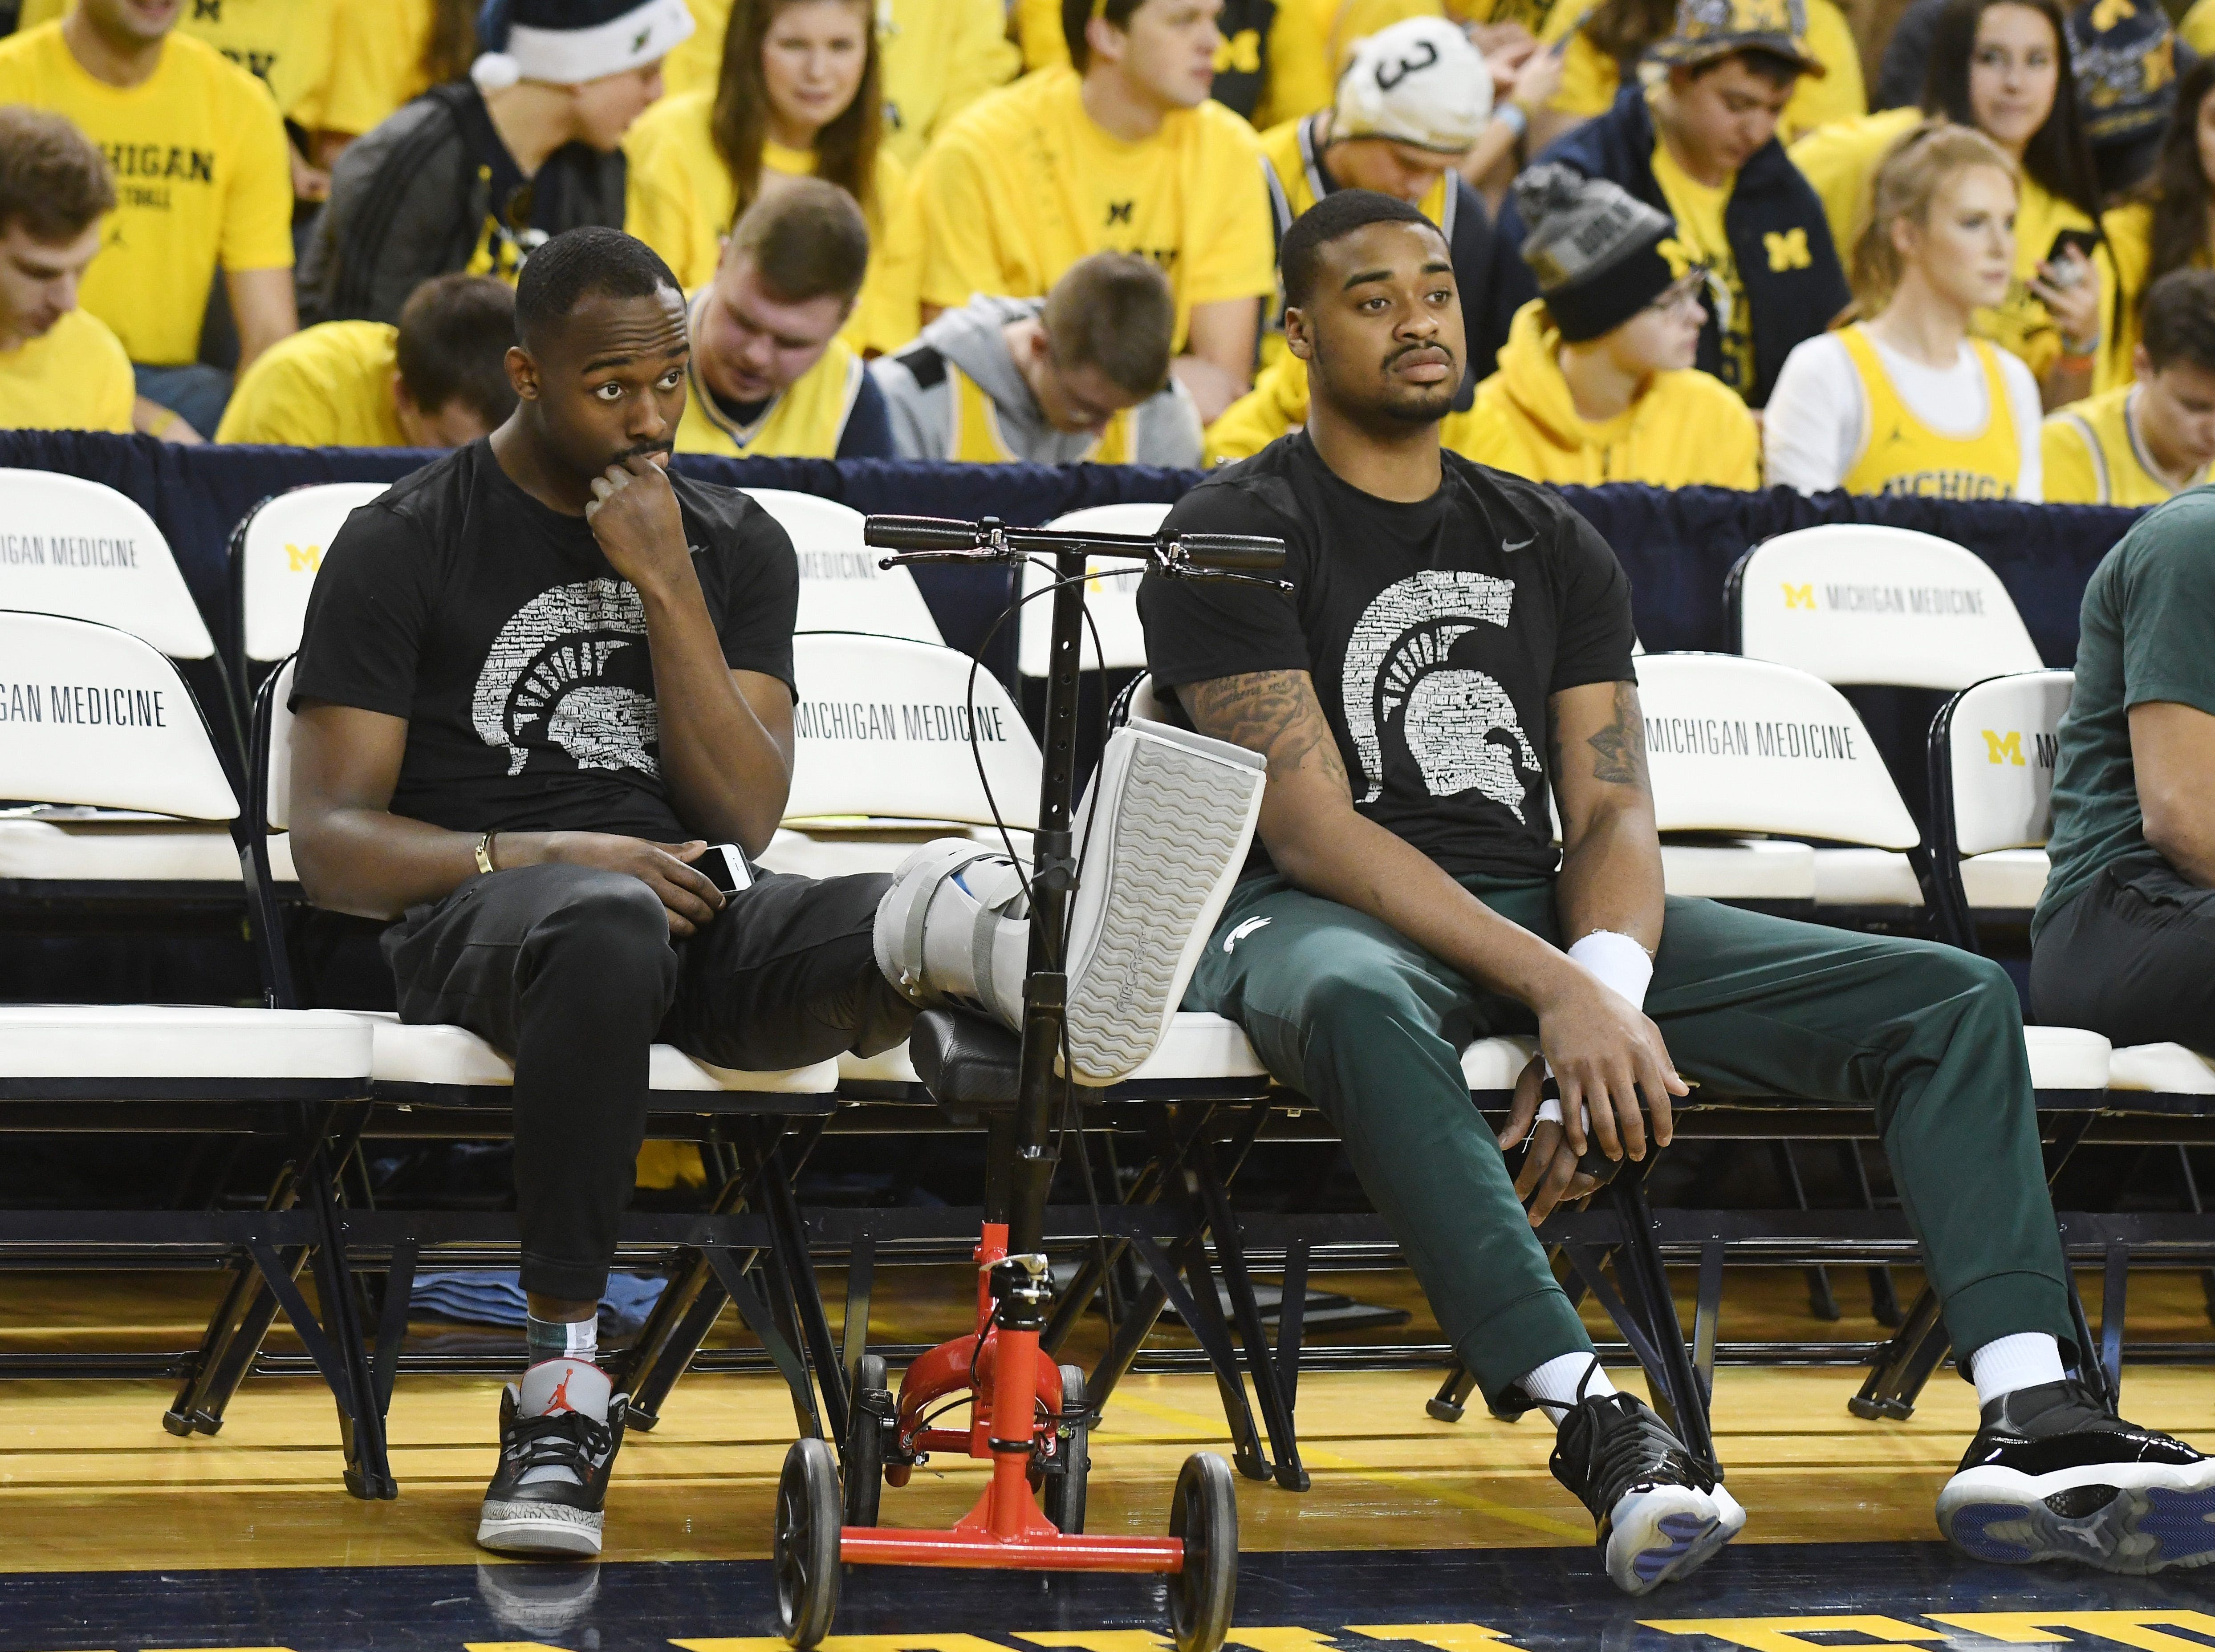 Injured Michigan State players Joshua Langford and Nick Ward on the bench during warmups before MSU takes on Michigan at Crisler Center in Ann Arbor, Michigan on February 24, 2019.